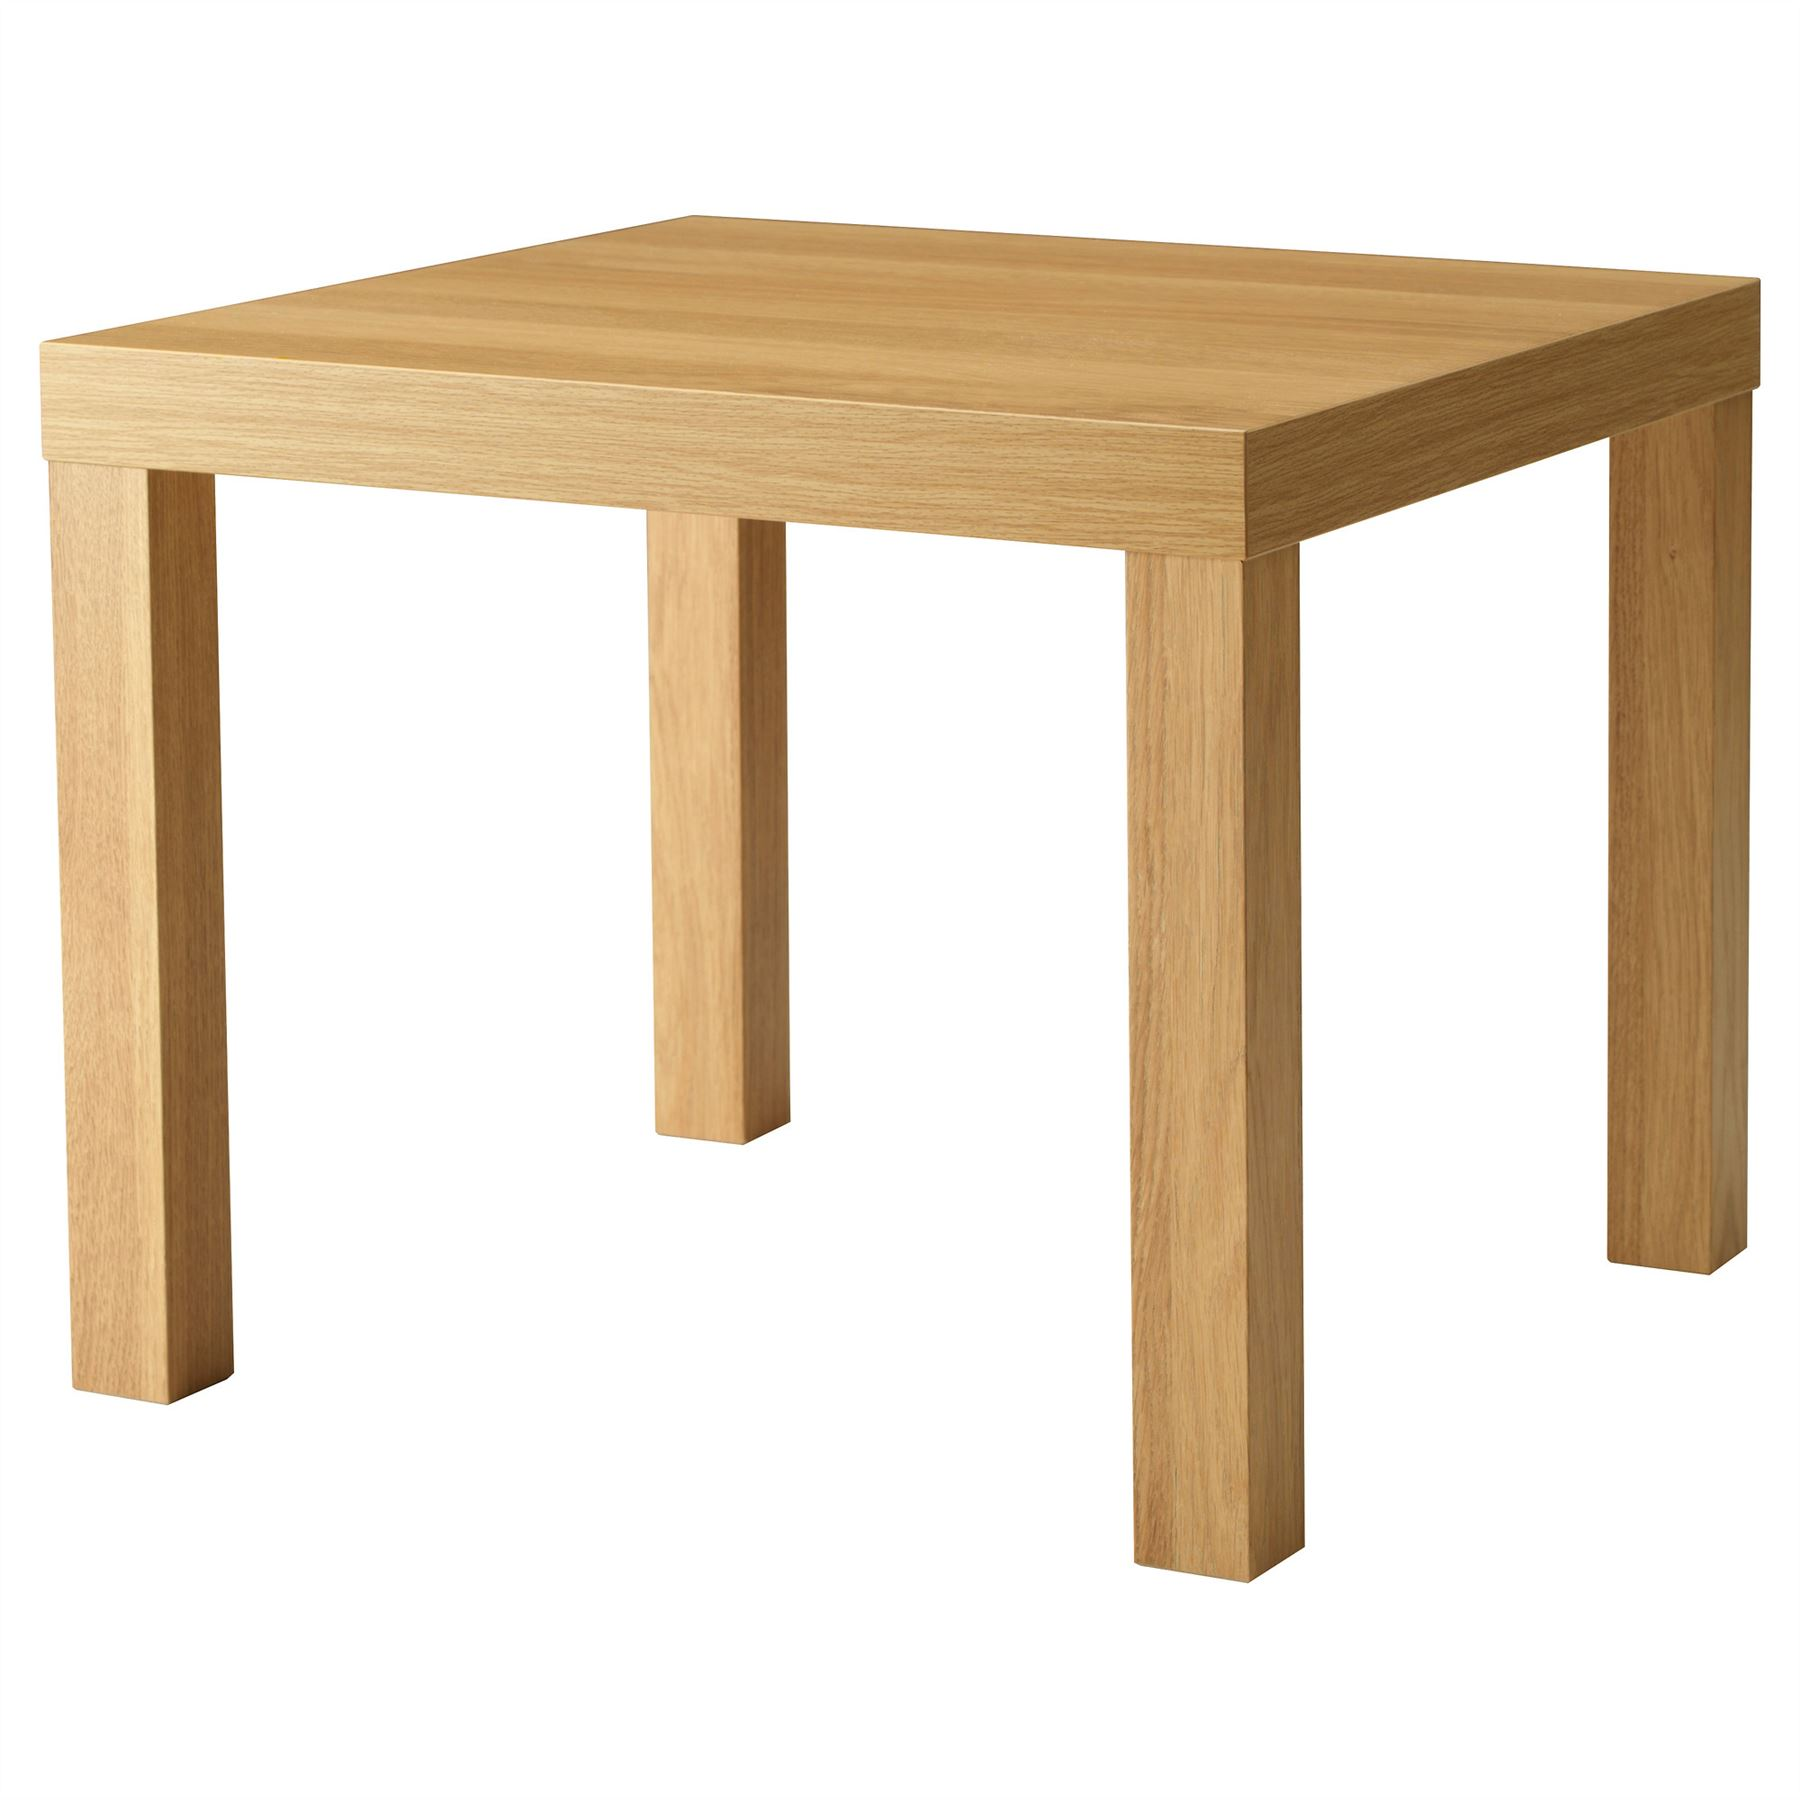 Ikea lack side table end display 55cm square small coffee for Ikea end tables salon